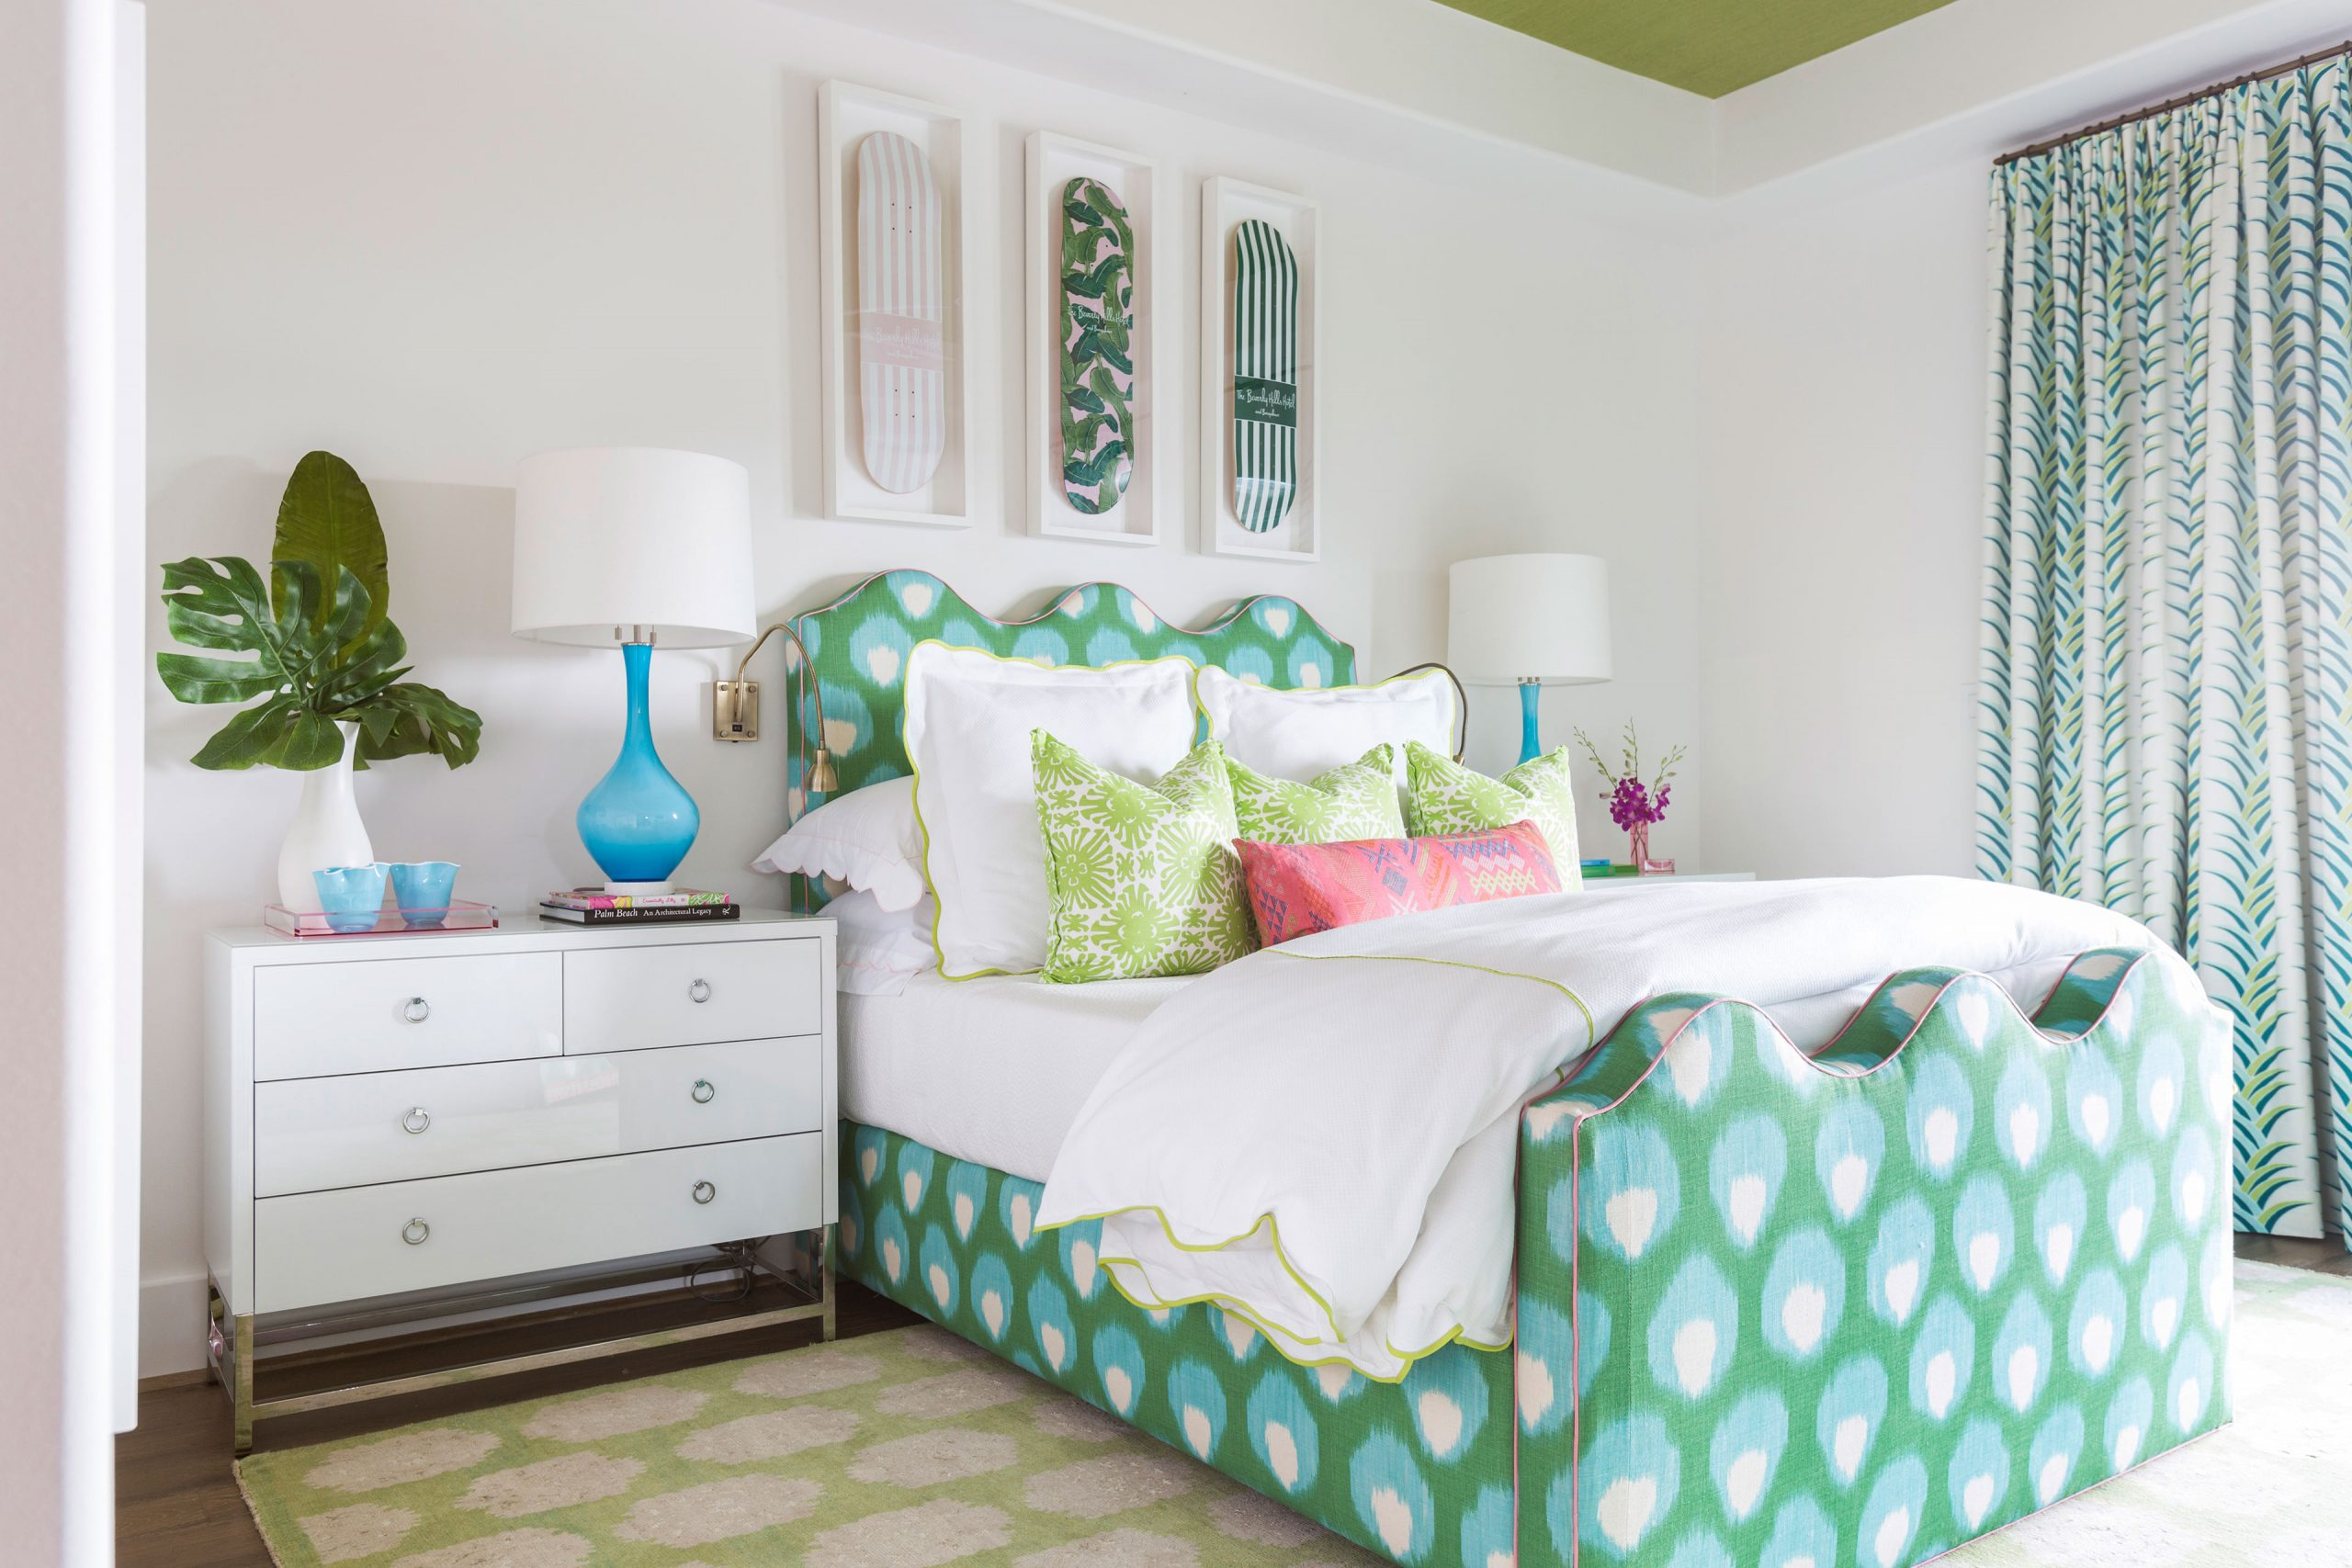 bright bedroom with green accents - Creative Tonic